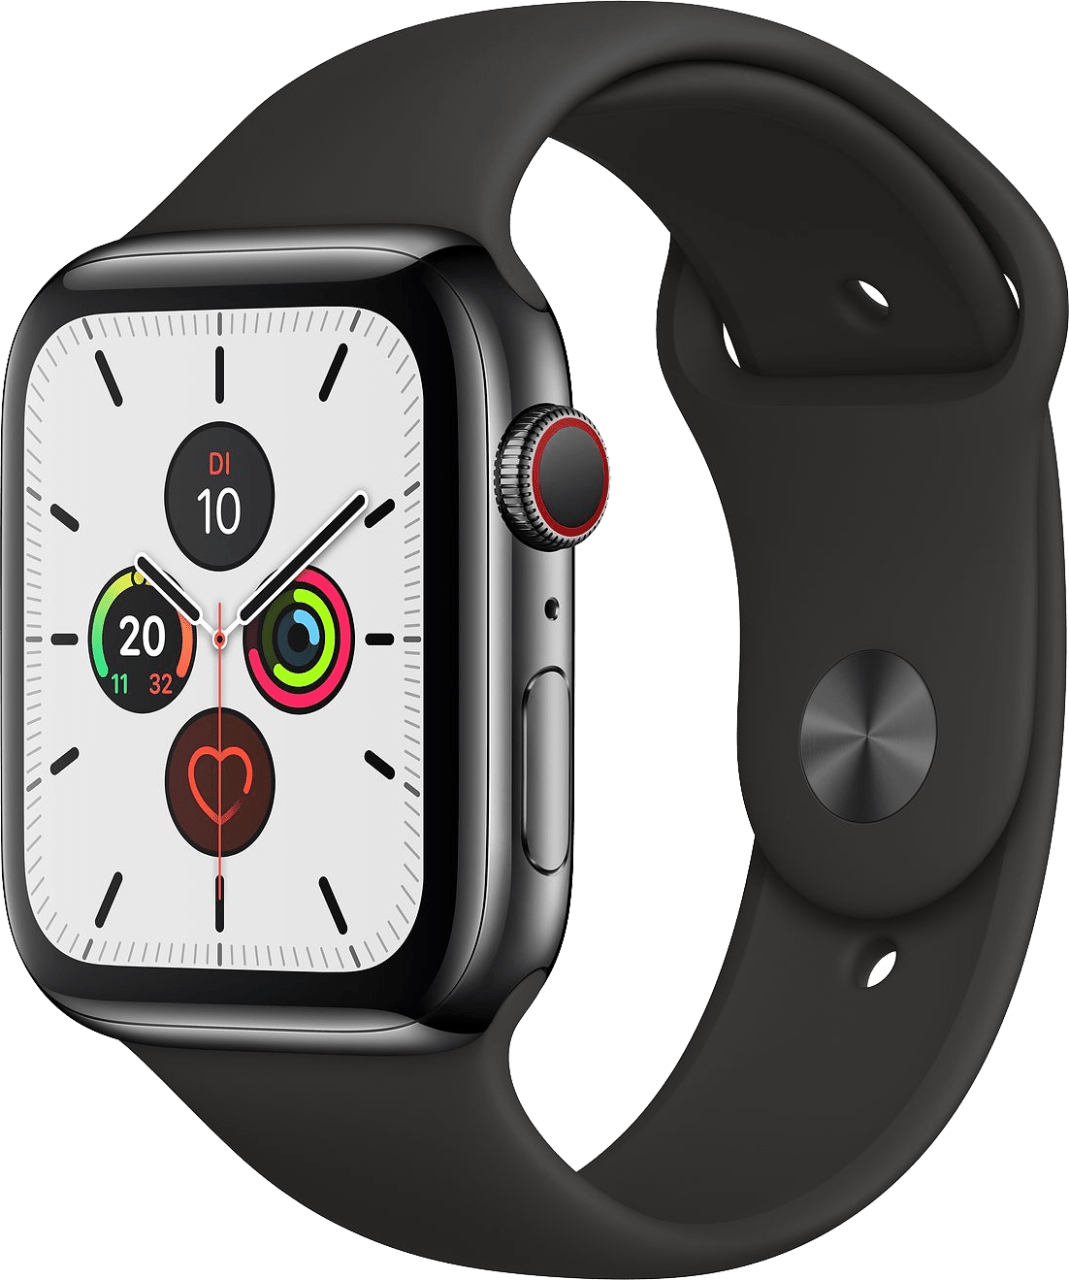 Schwarz Apple Watch Series 5 GPS + Cellular, 40mm.2